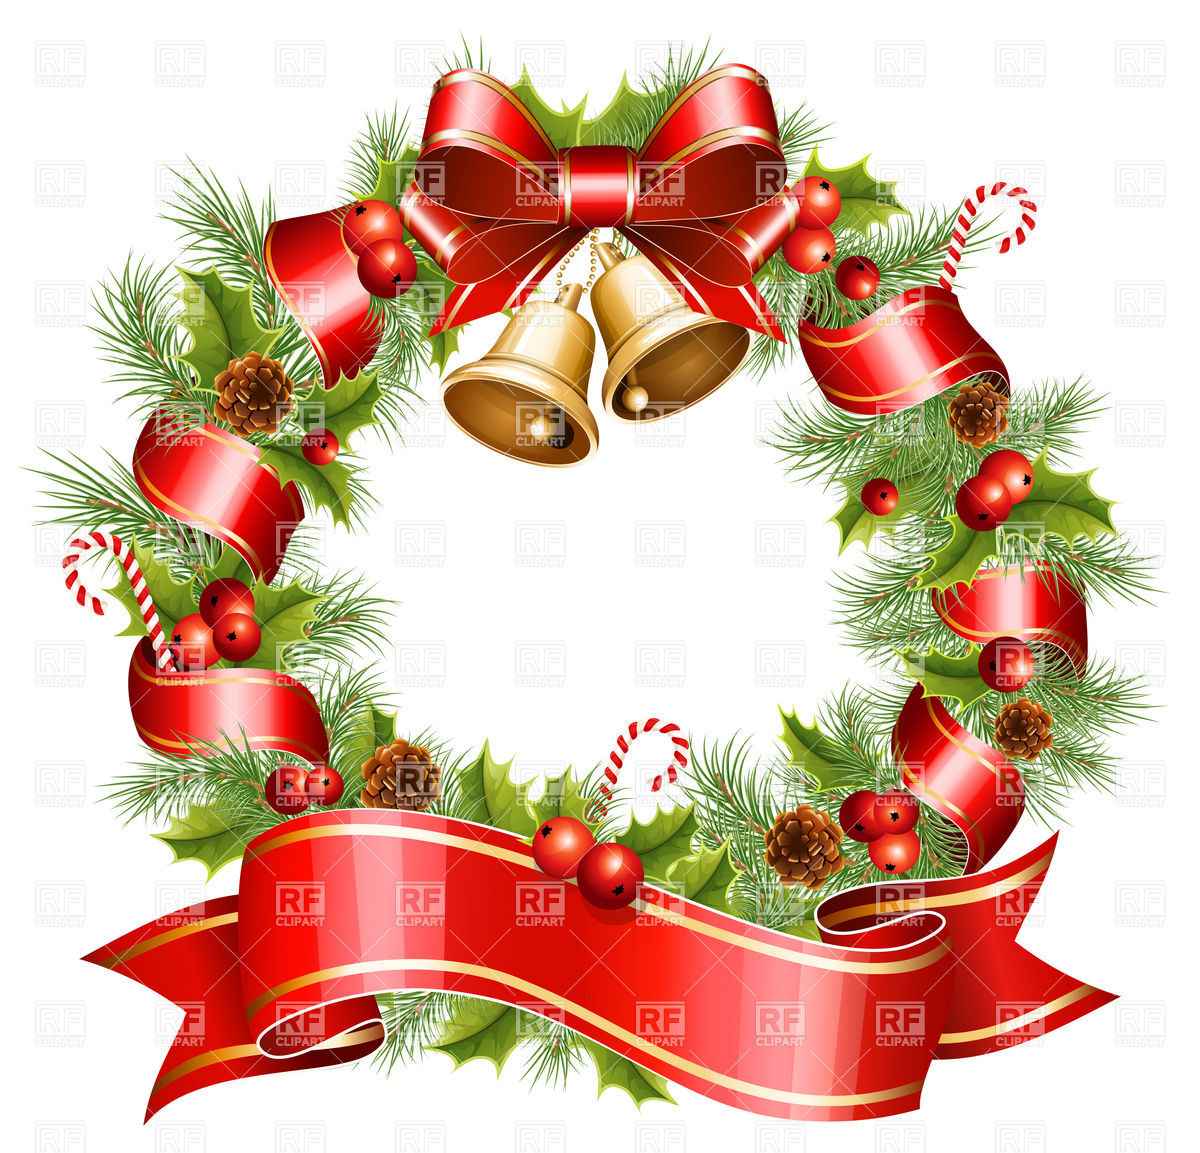 Clipart christmas free download svg royalty free download Christmas clip art download for free - ClipartFest svg royalty free download